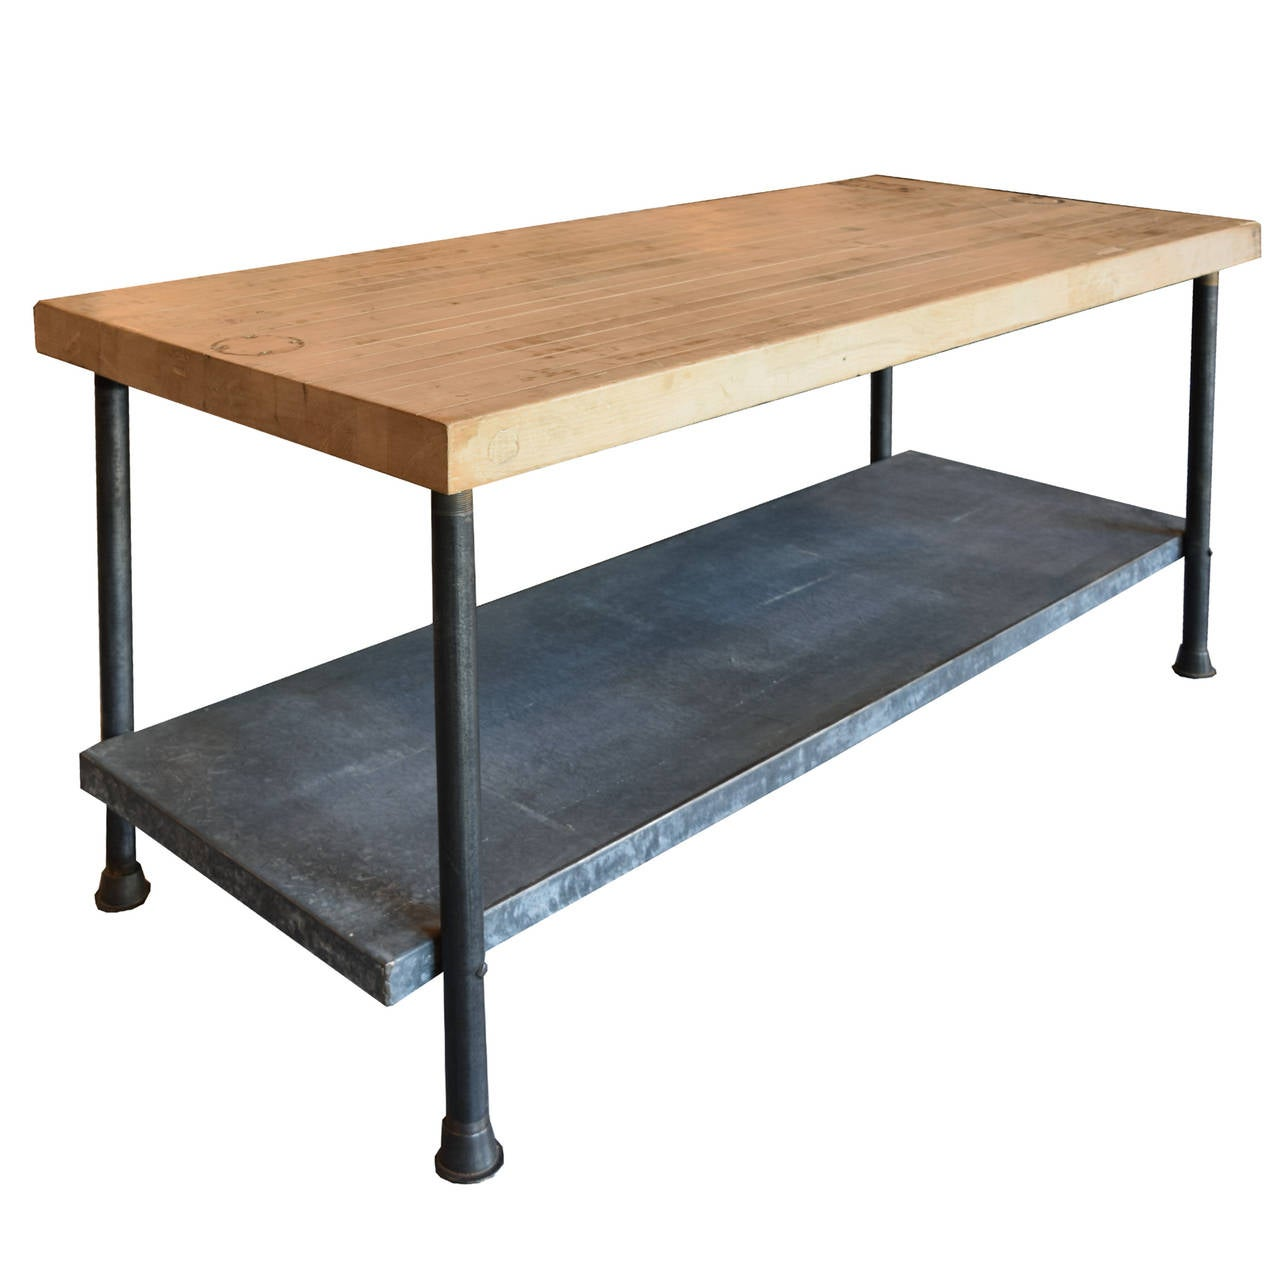 Industrial Work Table At 1stdibs. Office Desk Light. Windows Table. Computer Desk Hideaway. 6 Foot Folding Table. Small Patio Table. Unfinished Wood Desk. How To Install Cabinet Drawers. White L Shaped Desk